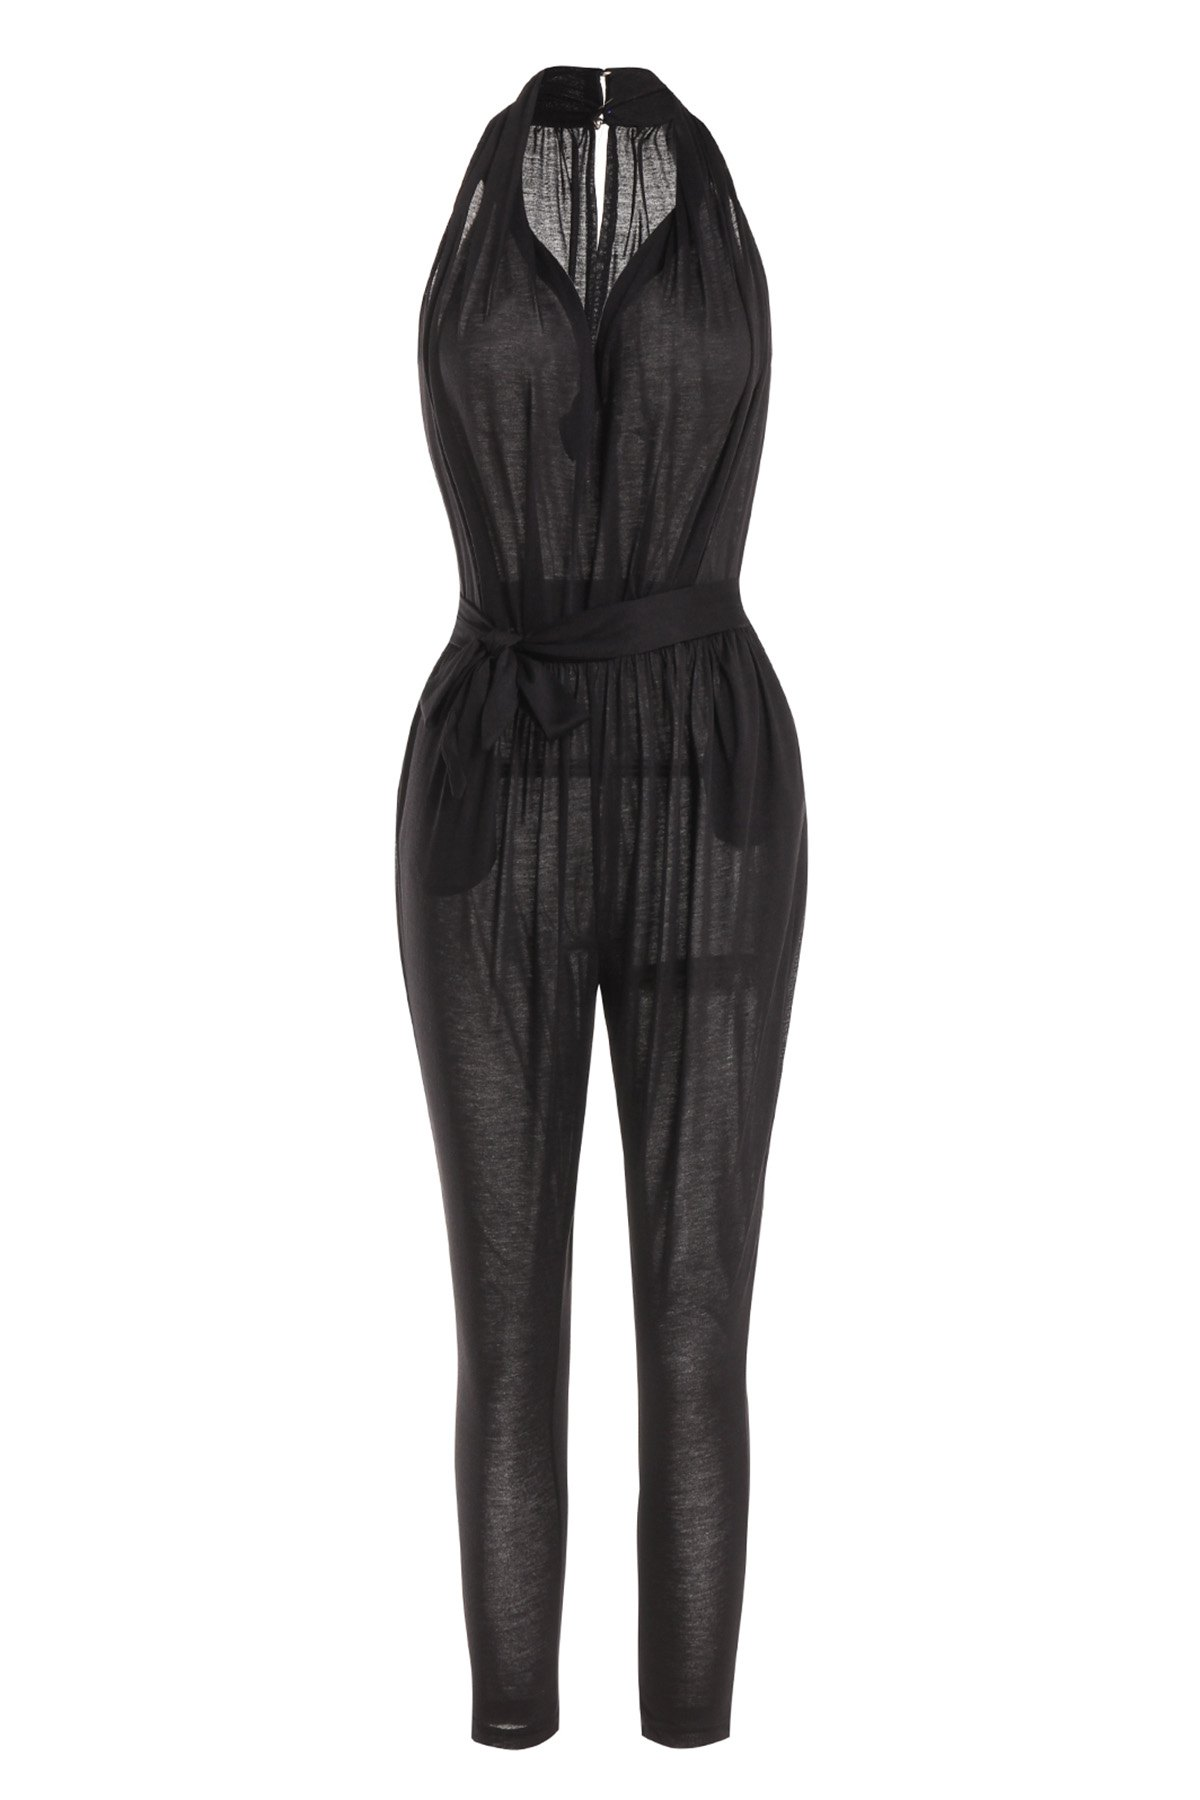 Stylish Plunging Neck Sleeveless Pocket Design Solid Color Women's Harem Jumpsuit - BLACK XL